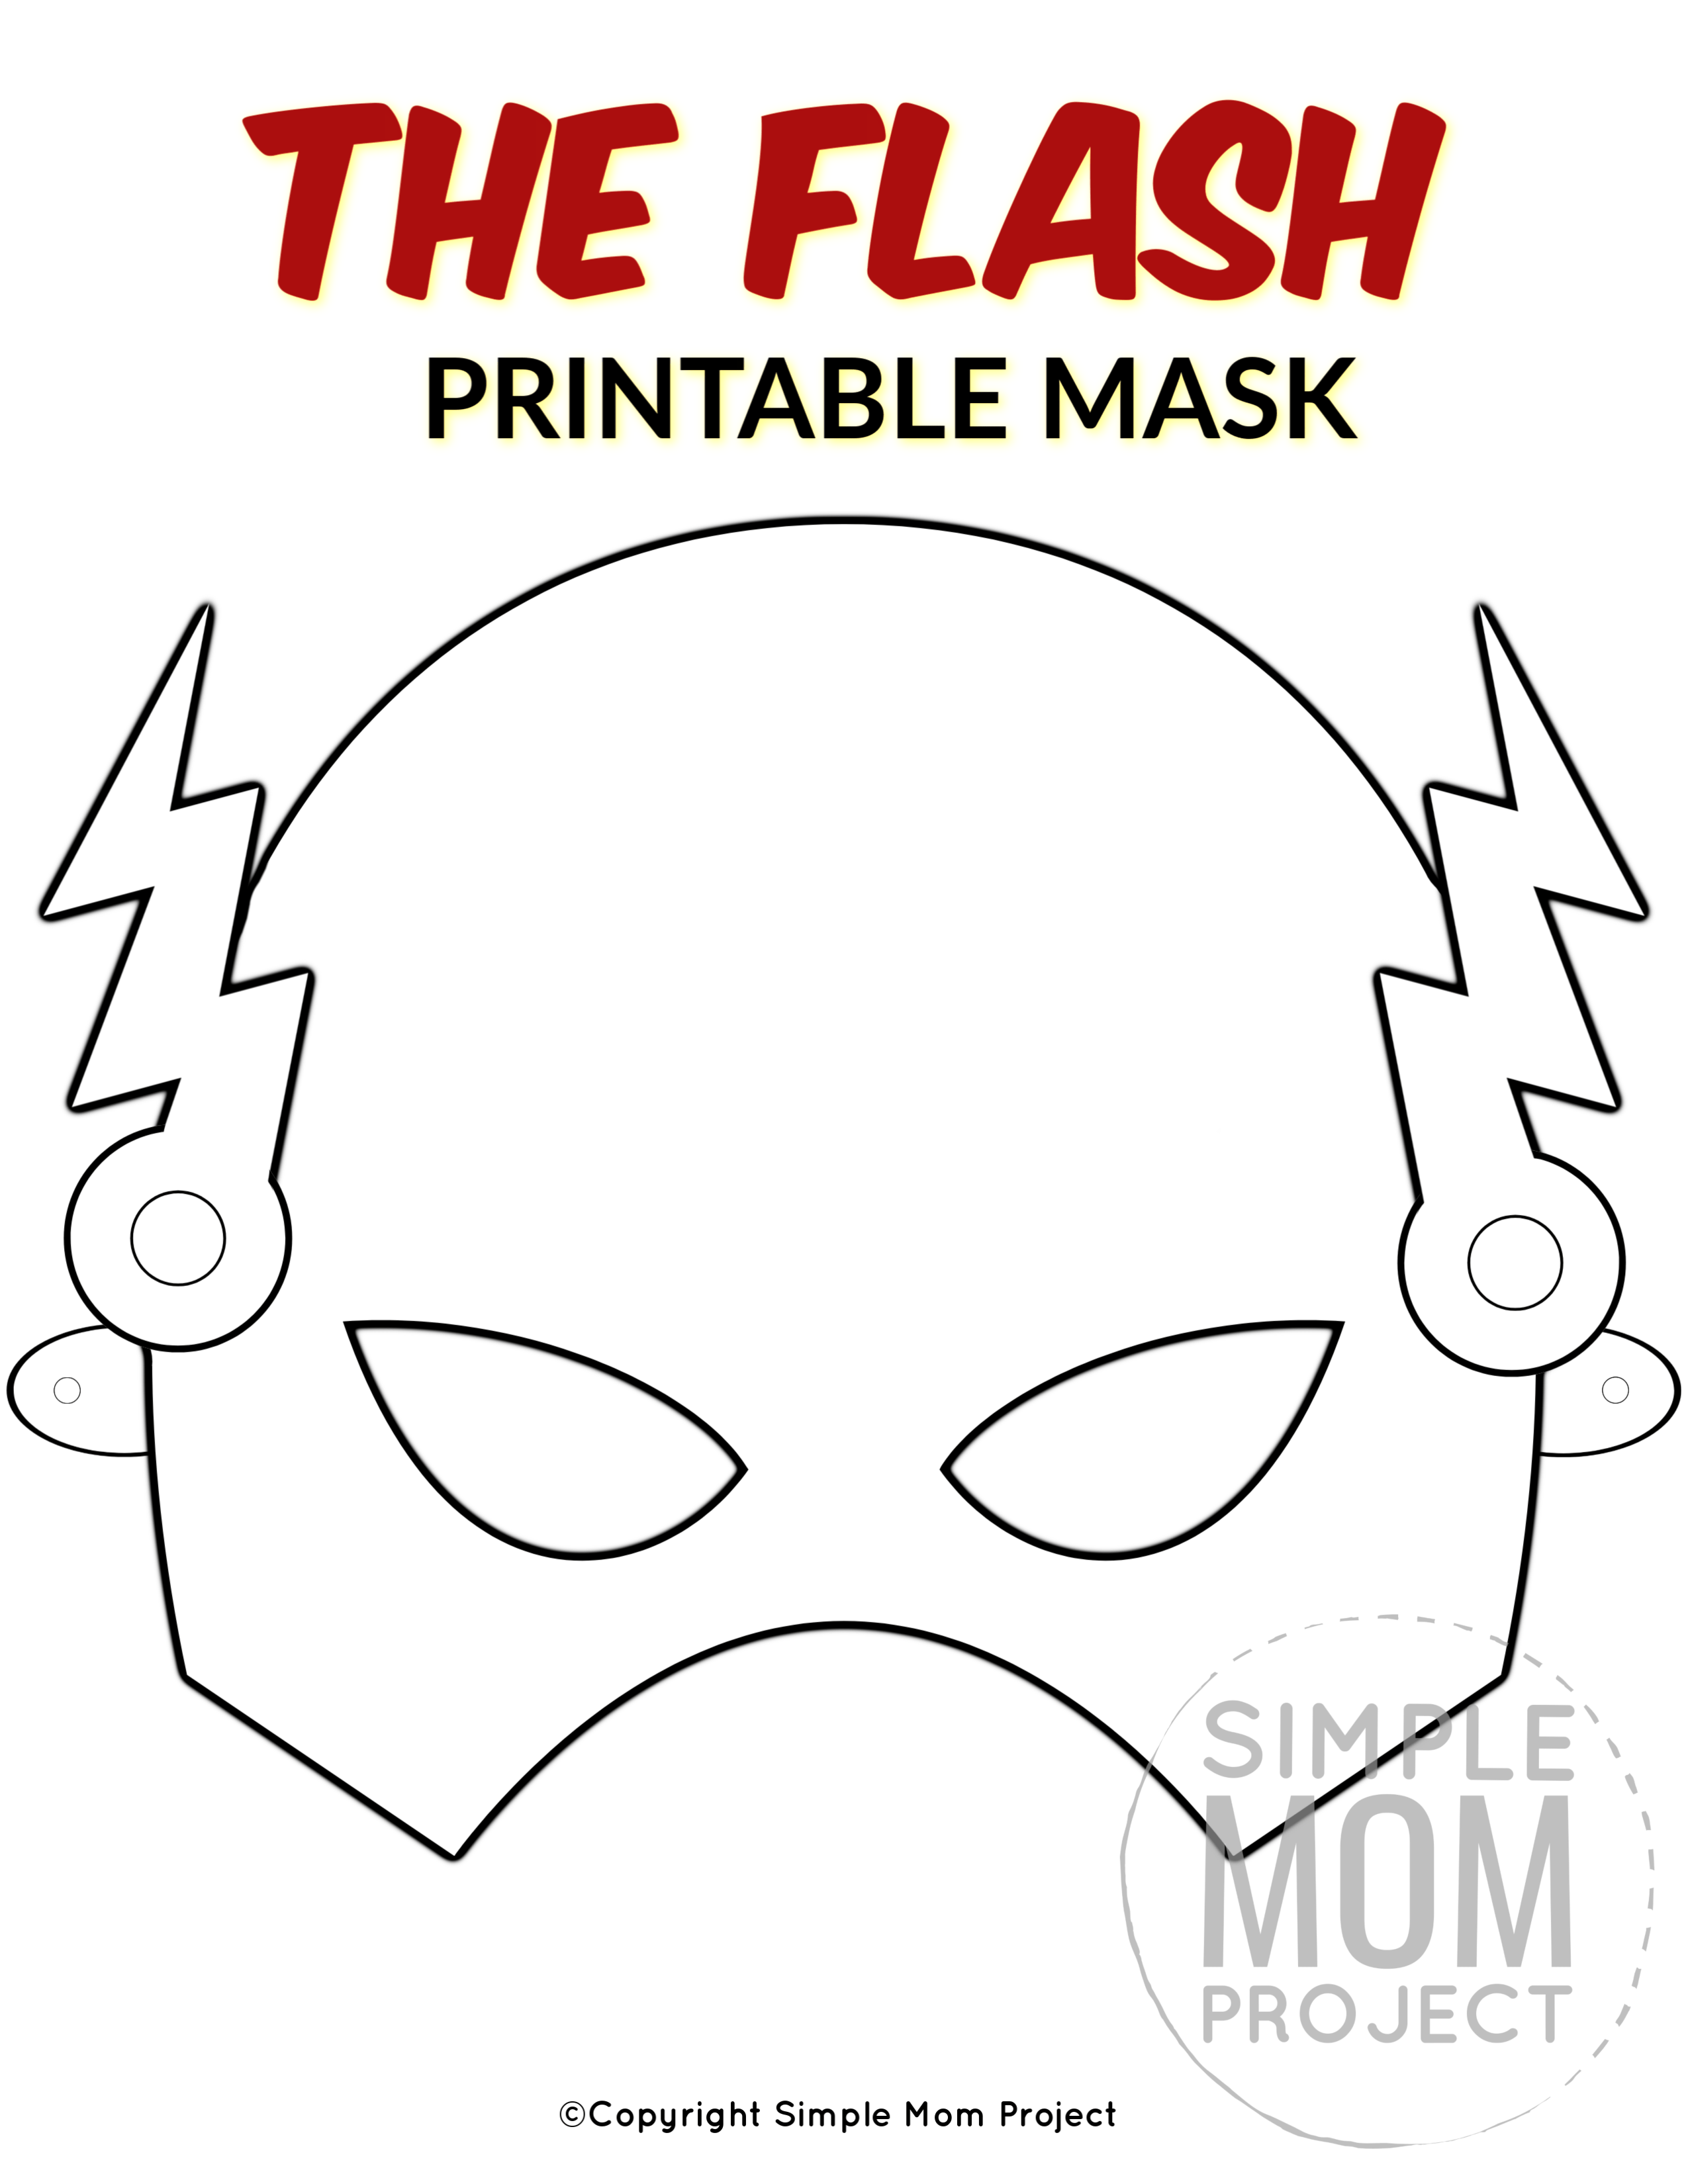 The Flash Free Printable Mask Template Simple Mom Project In 2020 Mask For Kids Face Masks For Kids Coloring Mask